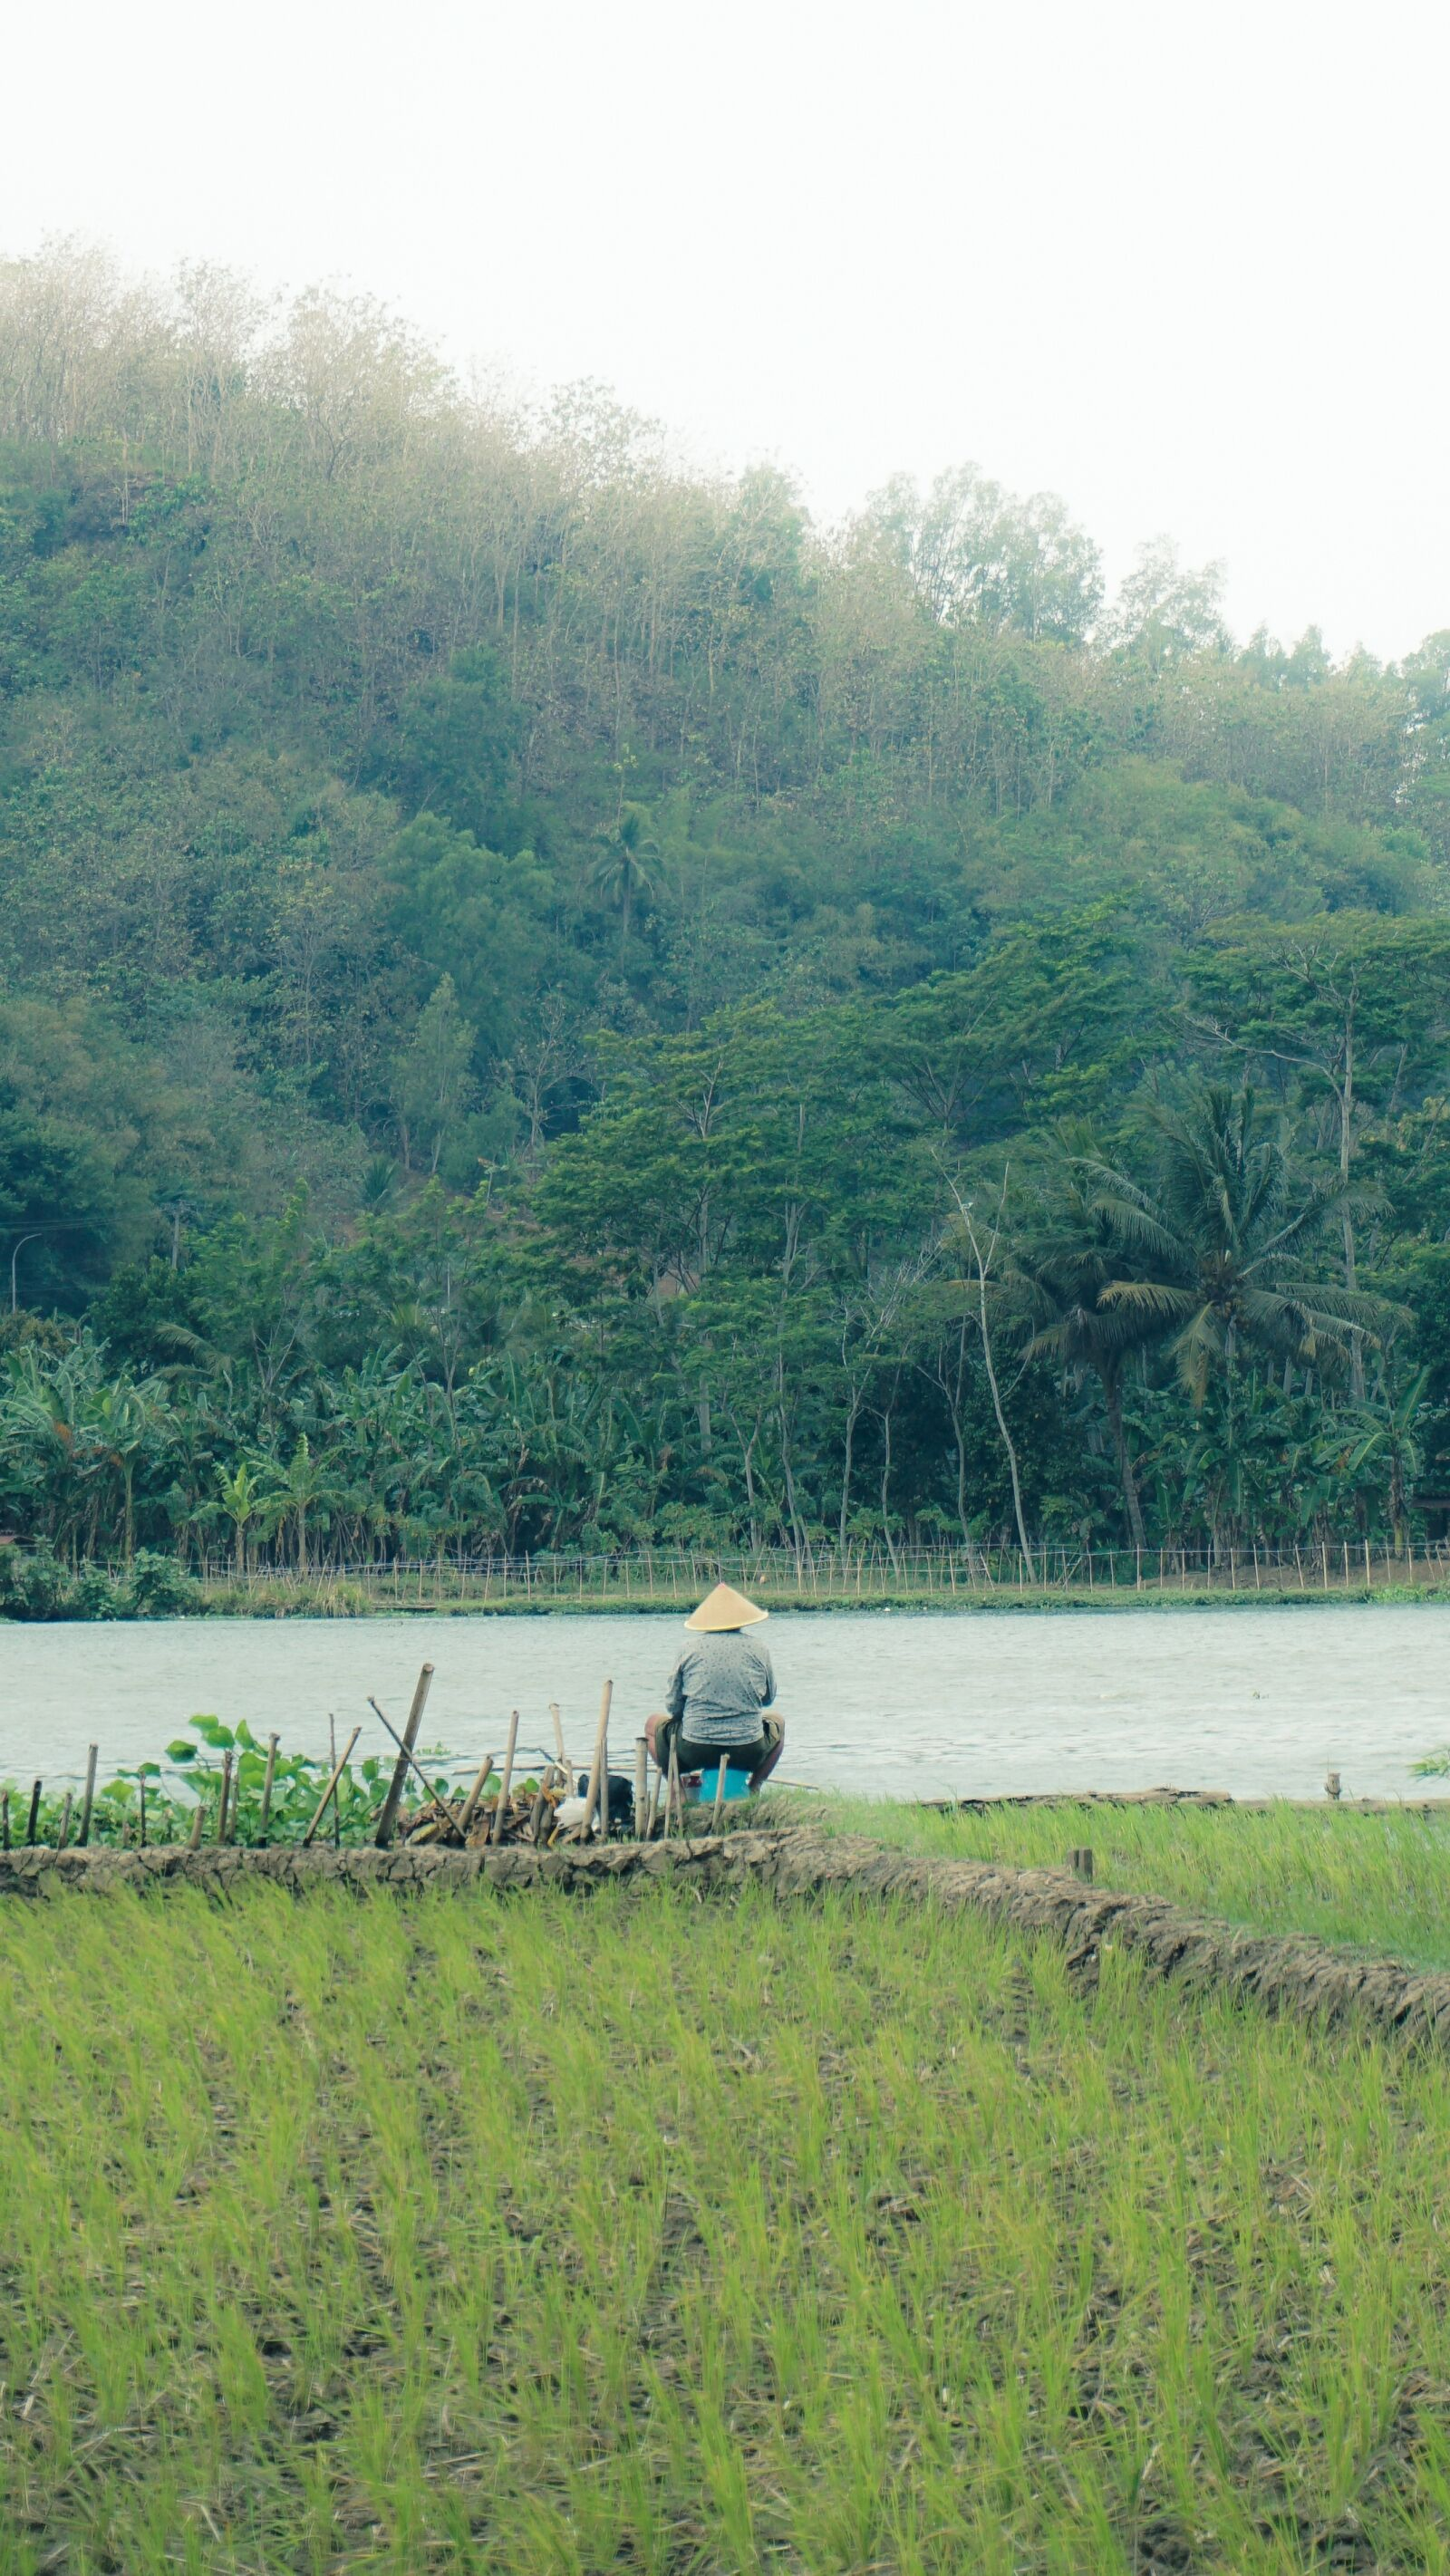 """Sony a6000 sample photo. """"Rice, field, river"""" photography"""